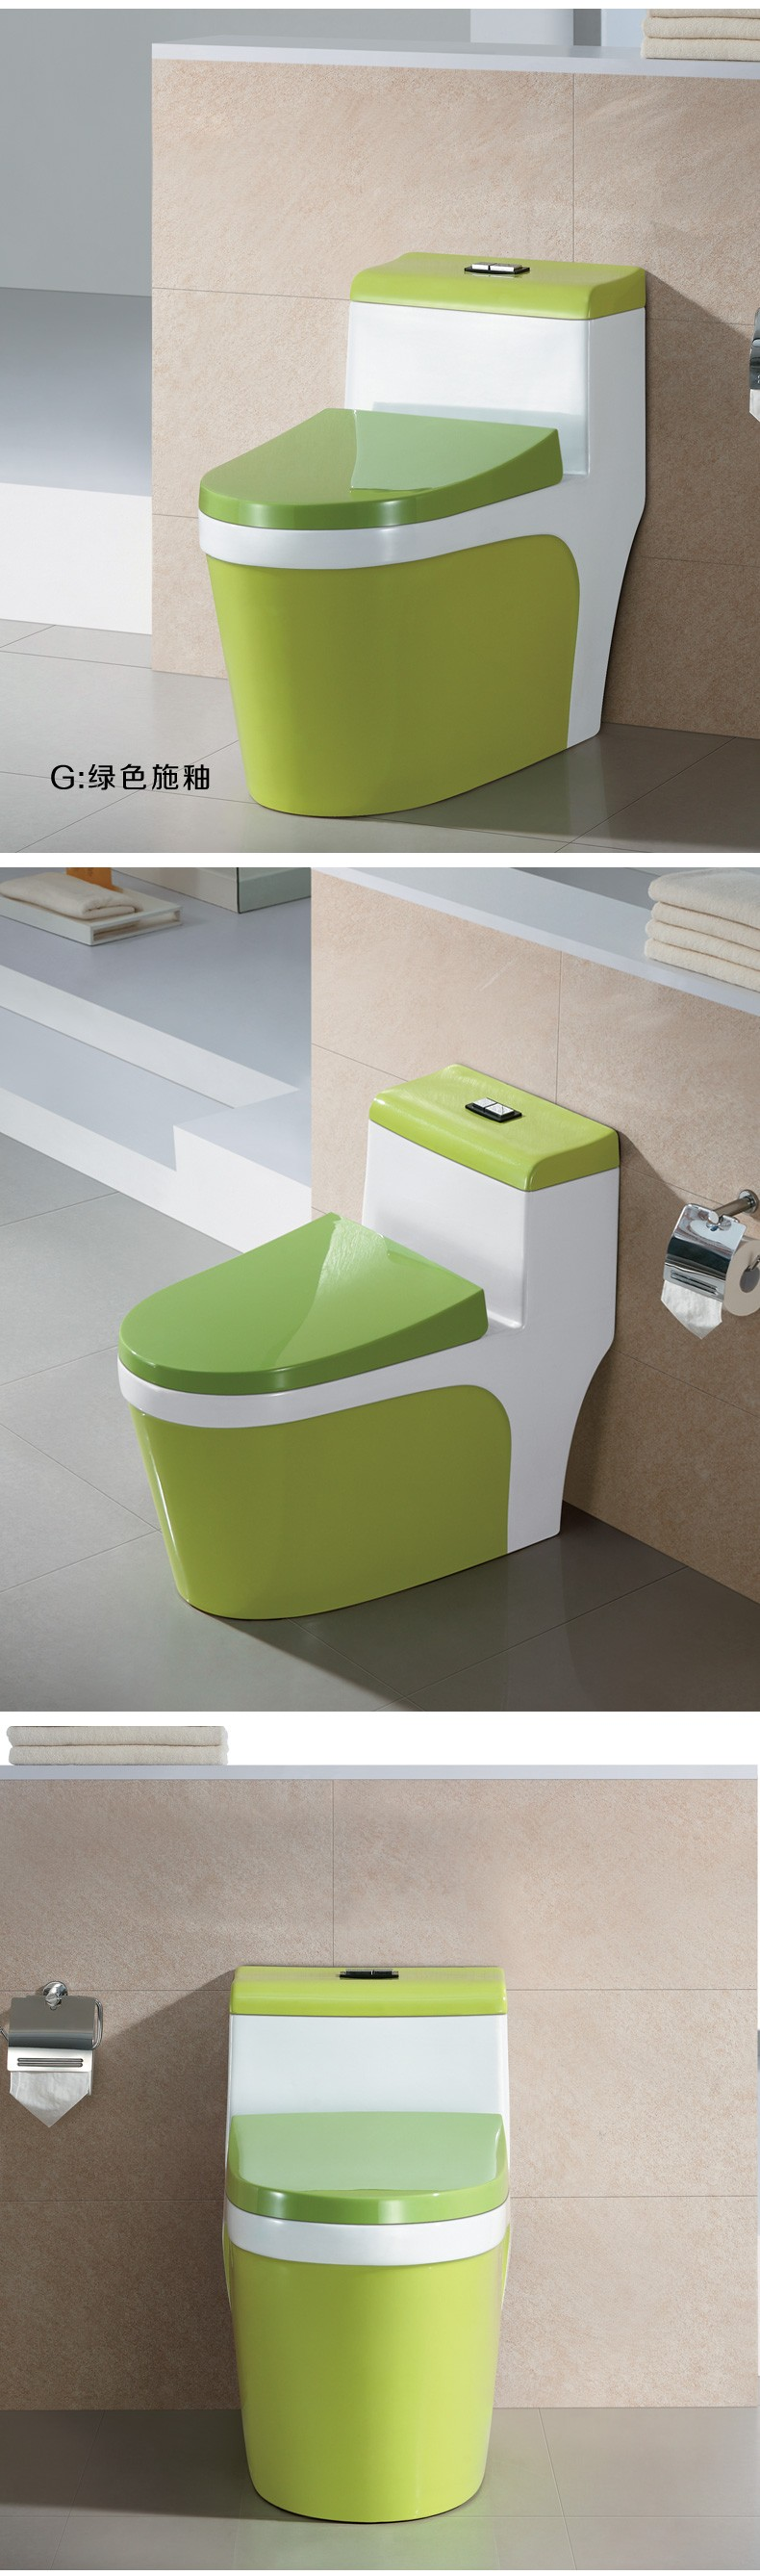 Ceramic flooring cleopatra color beauty toilet